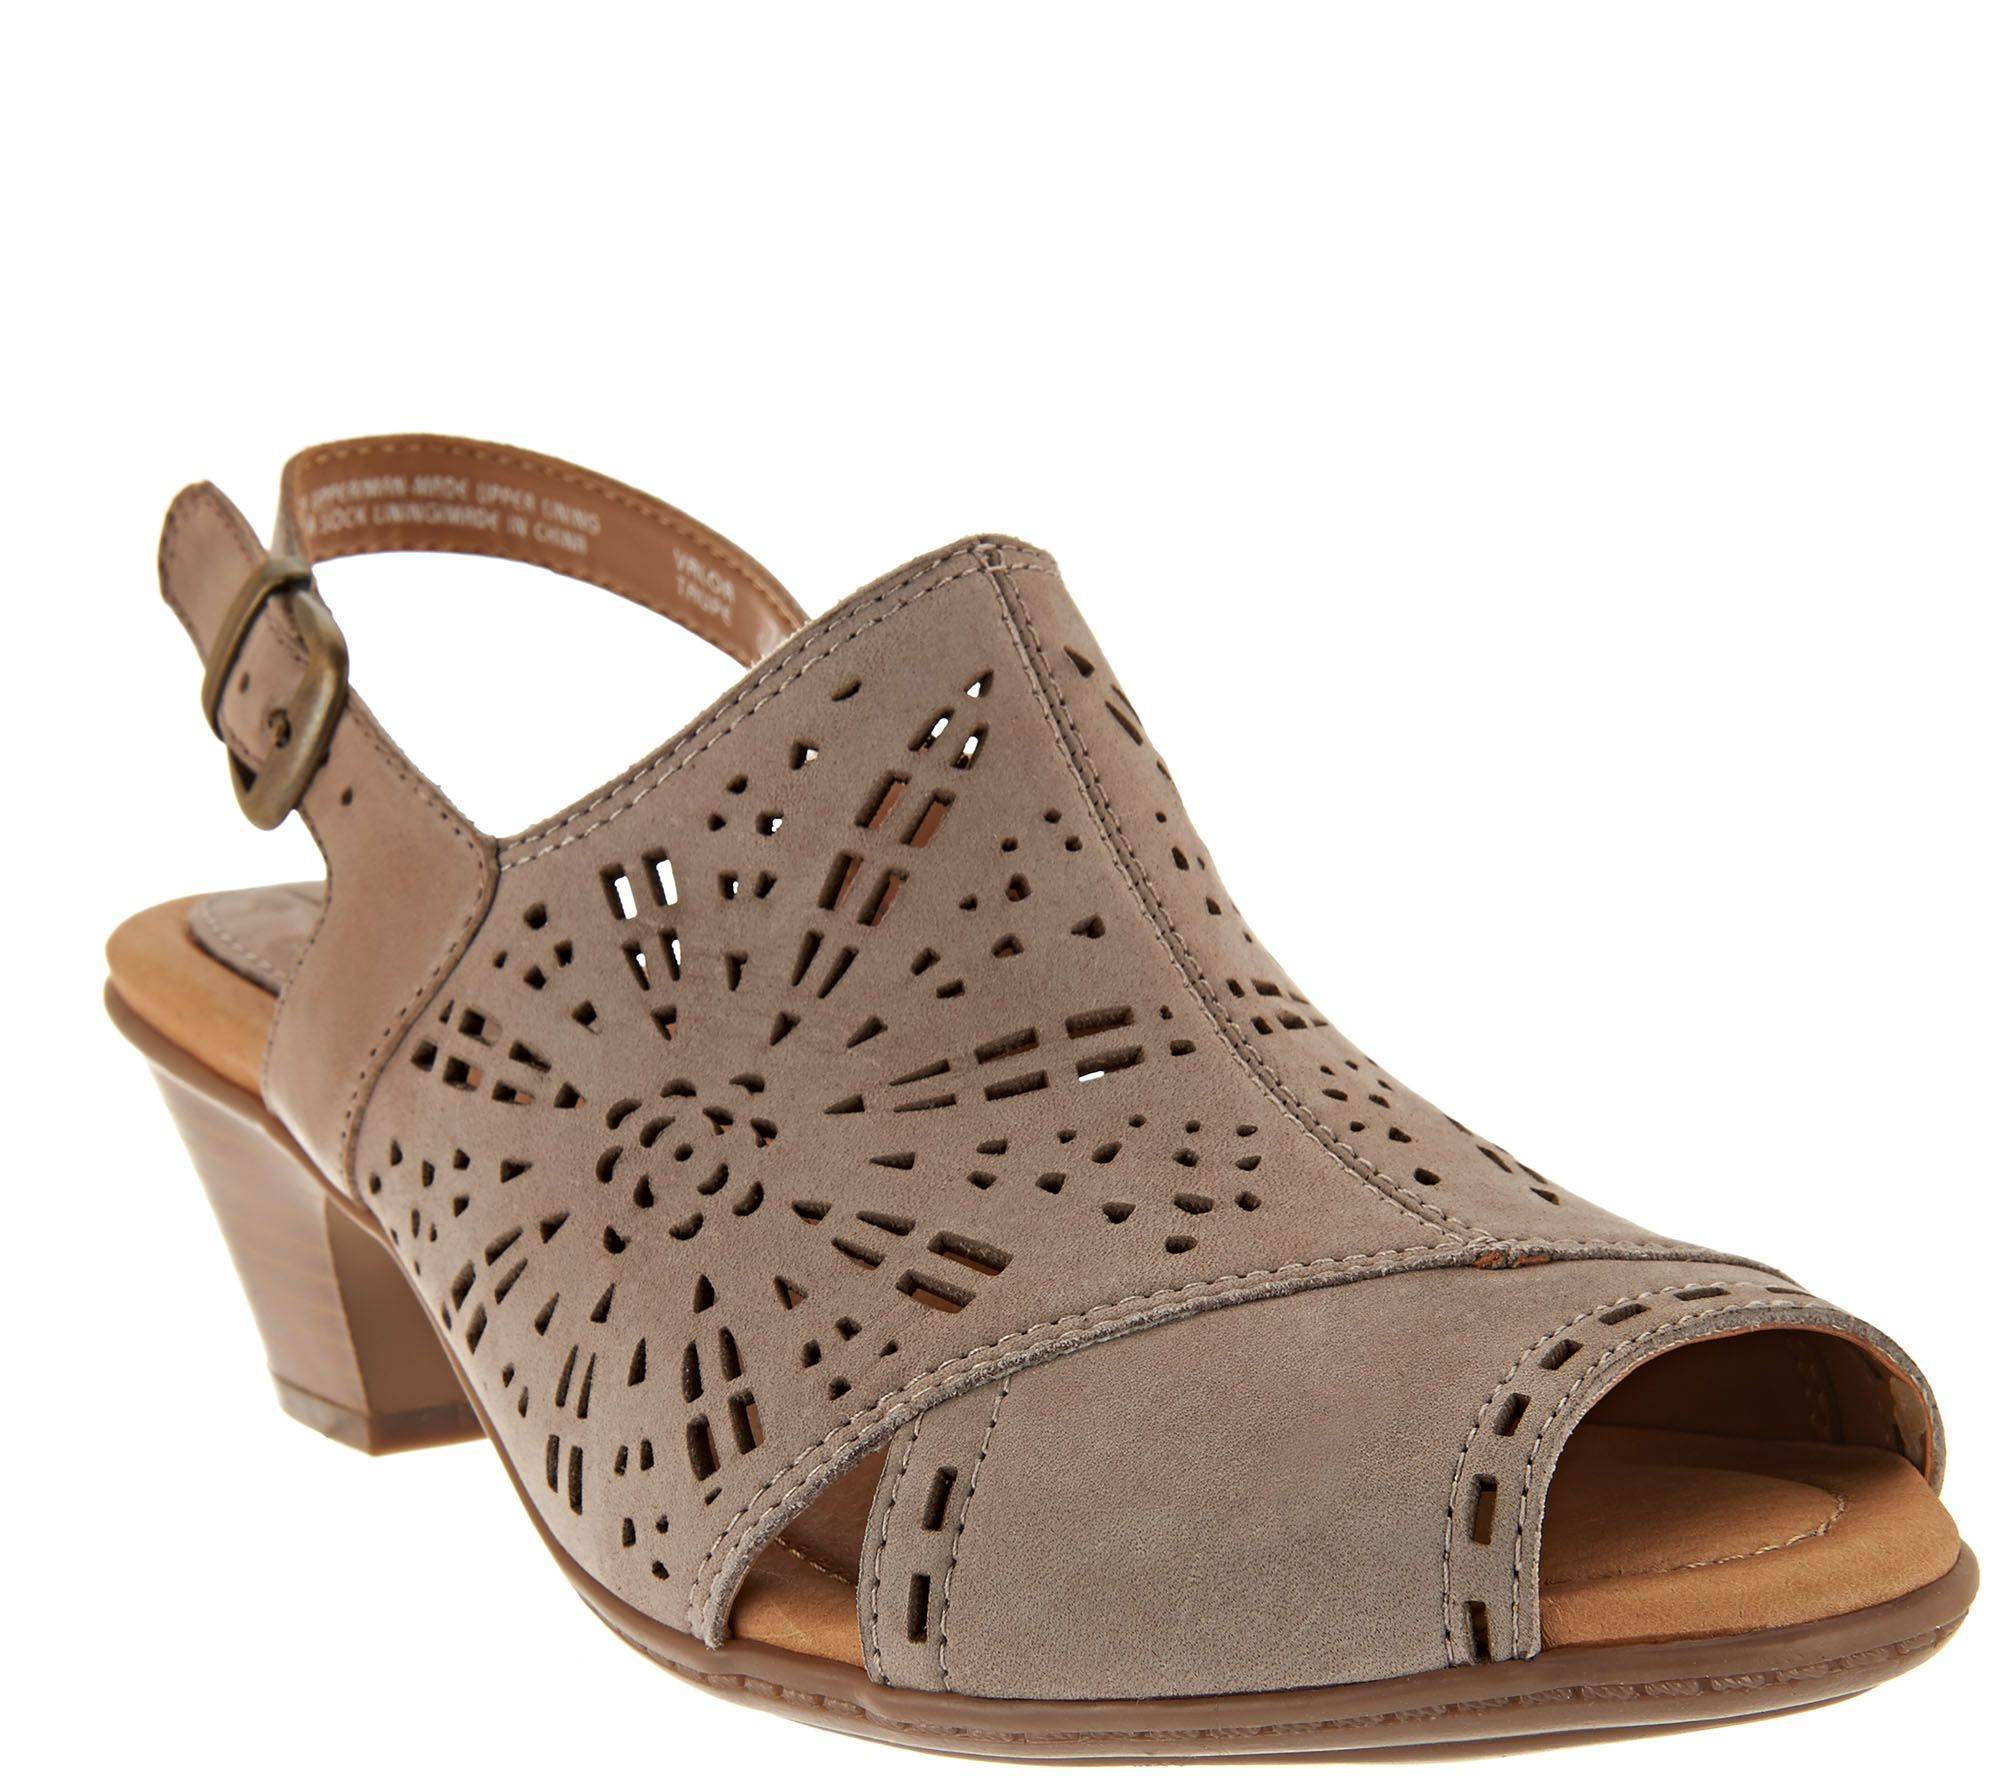 Earth Leather Perforated Sling-back Sandals - Valor - A276880